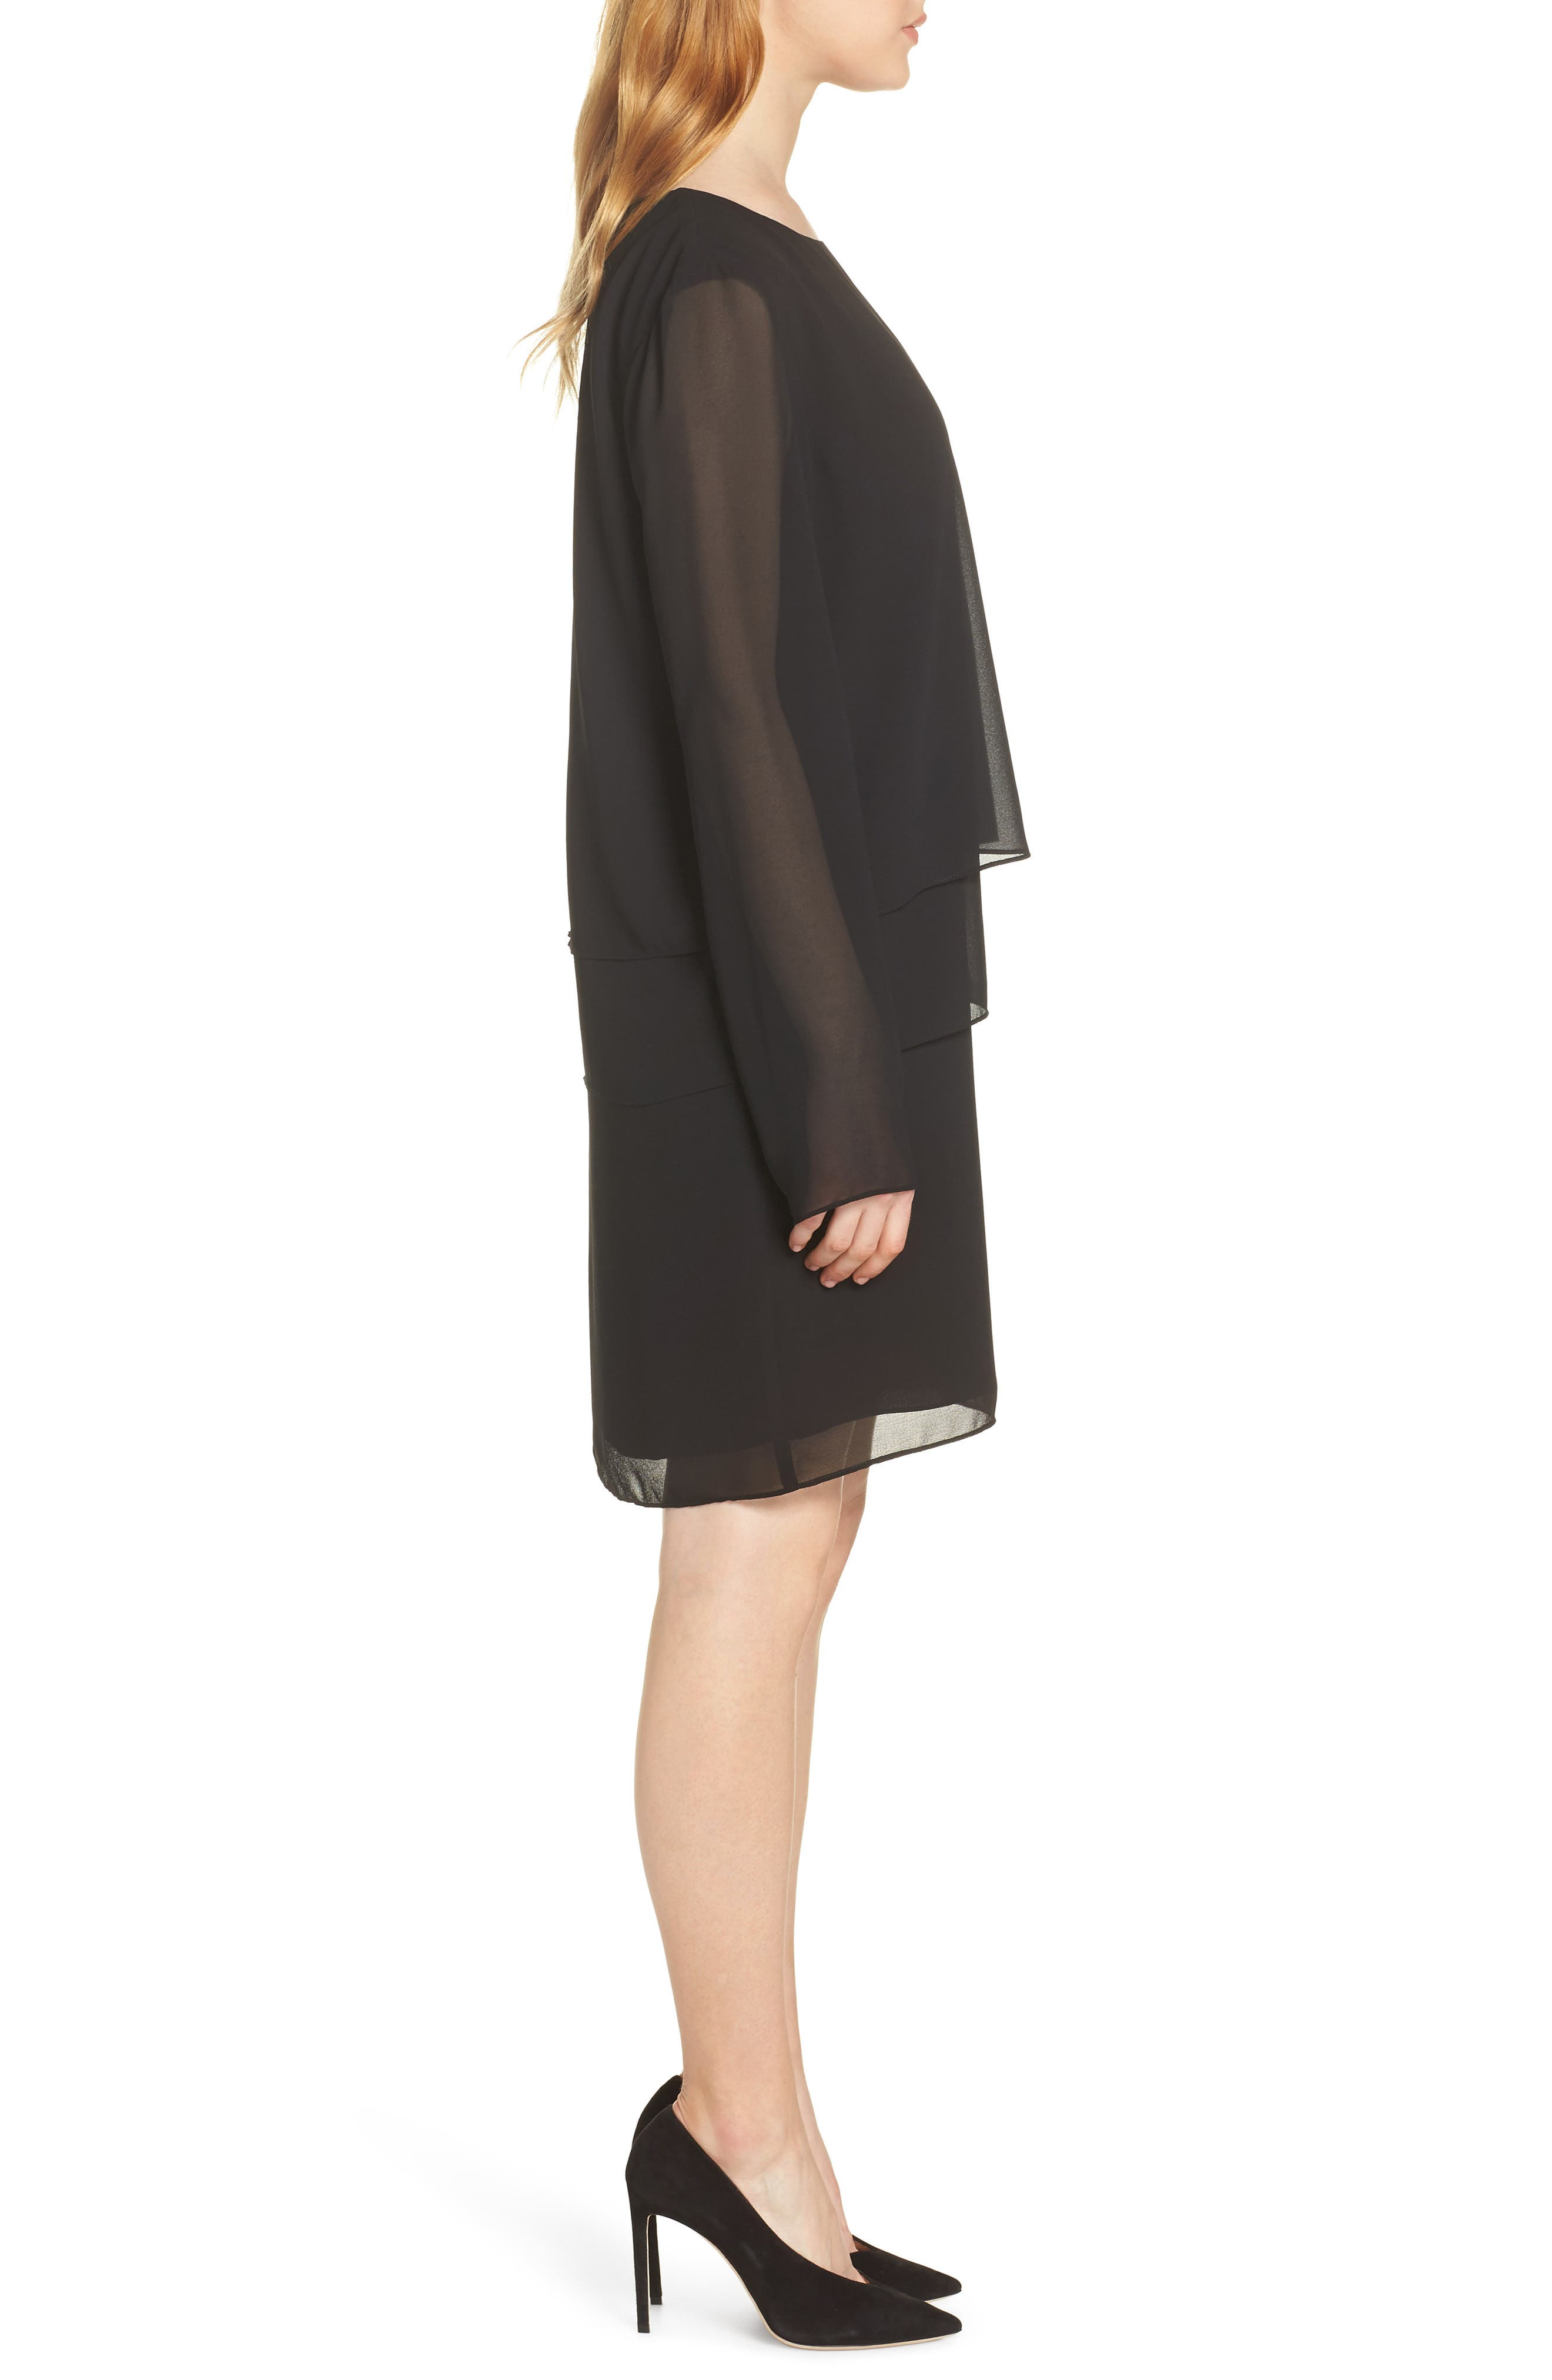 CHARLES HENRY, Layered Popover Chiffon Dress, Alternate thumbnail 4, color, 001